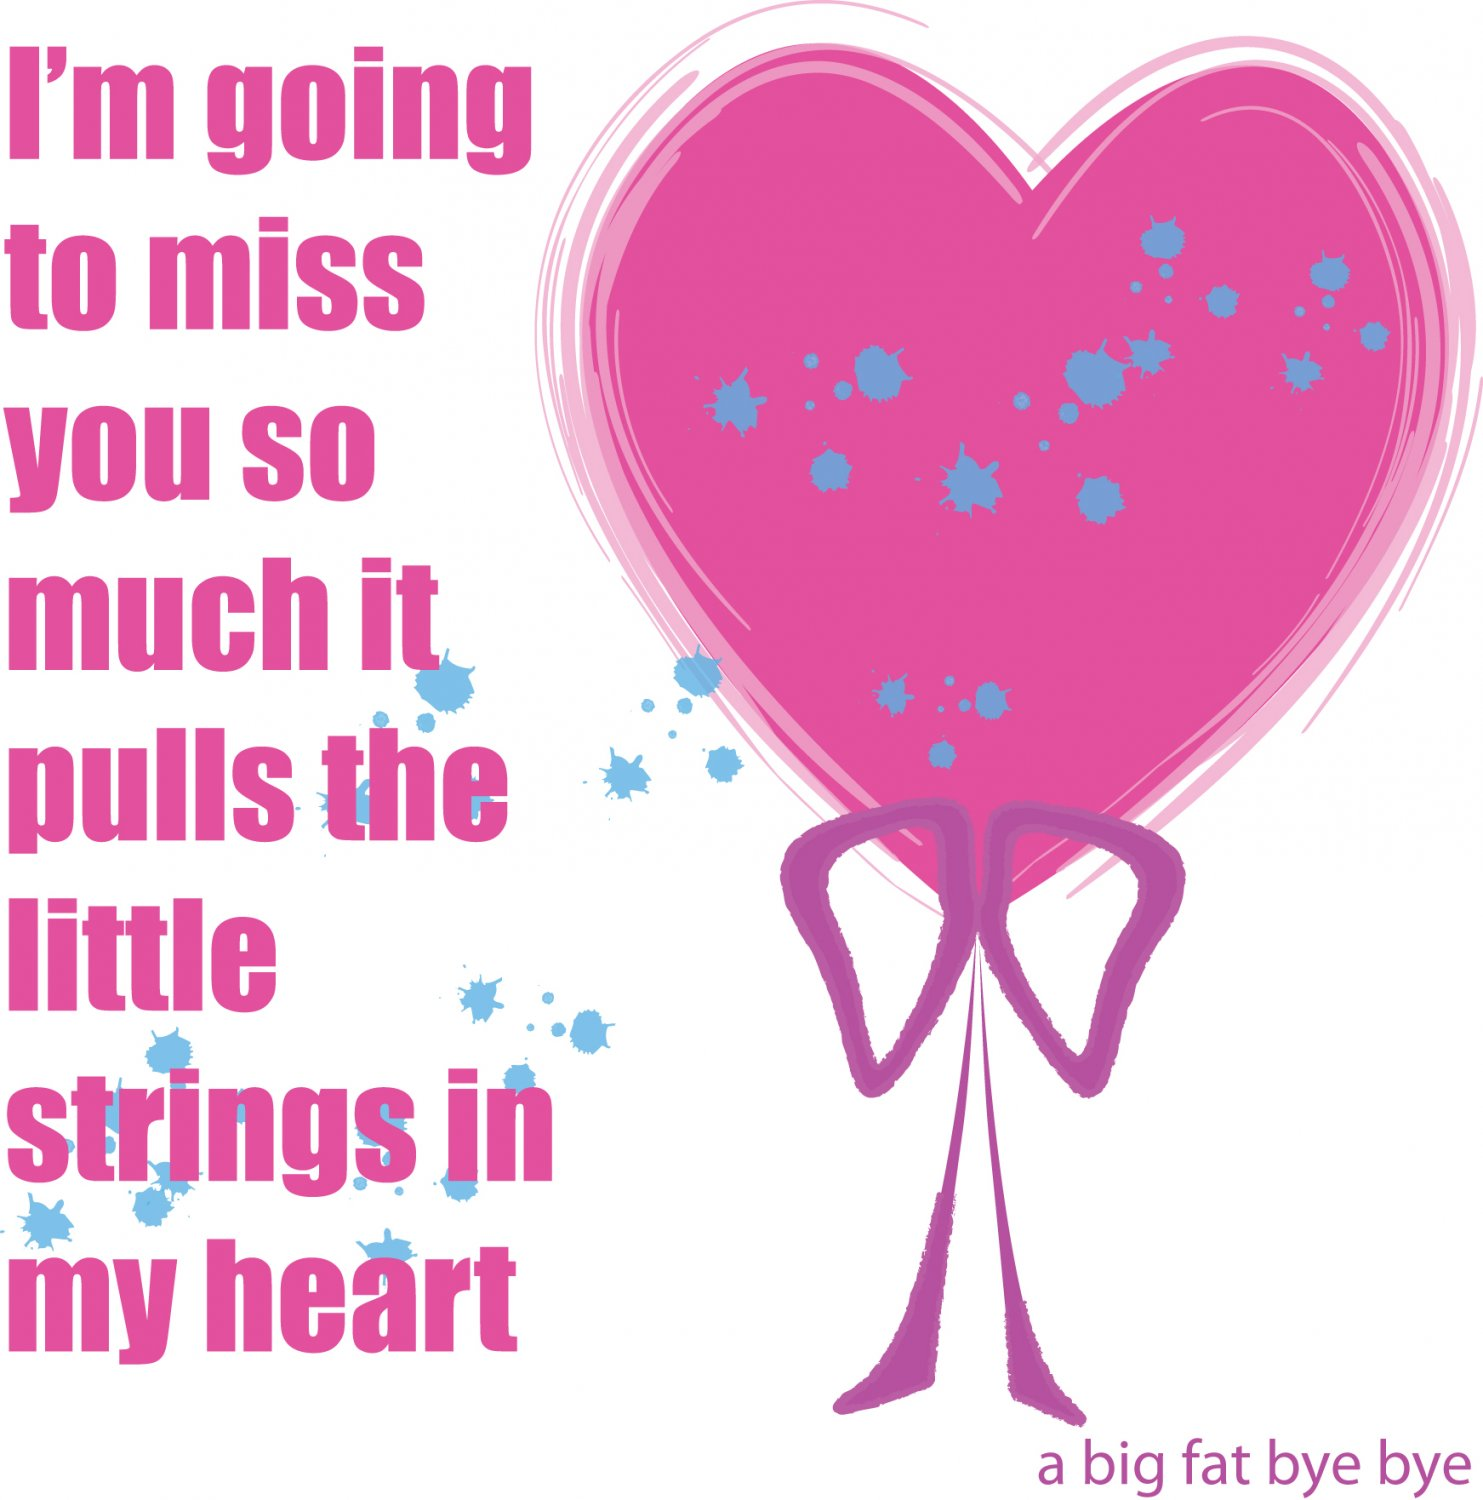 I Will Miss You So Much Greetings Card